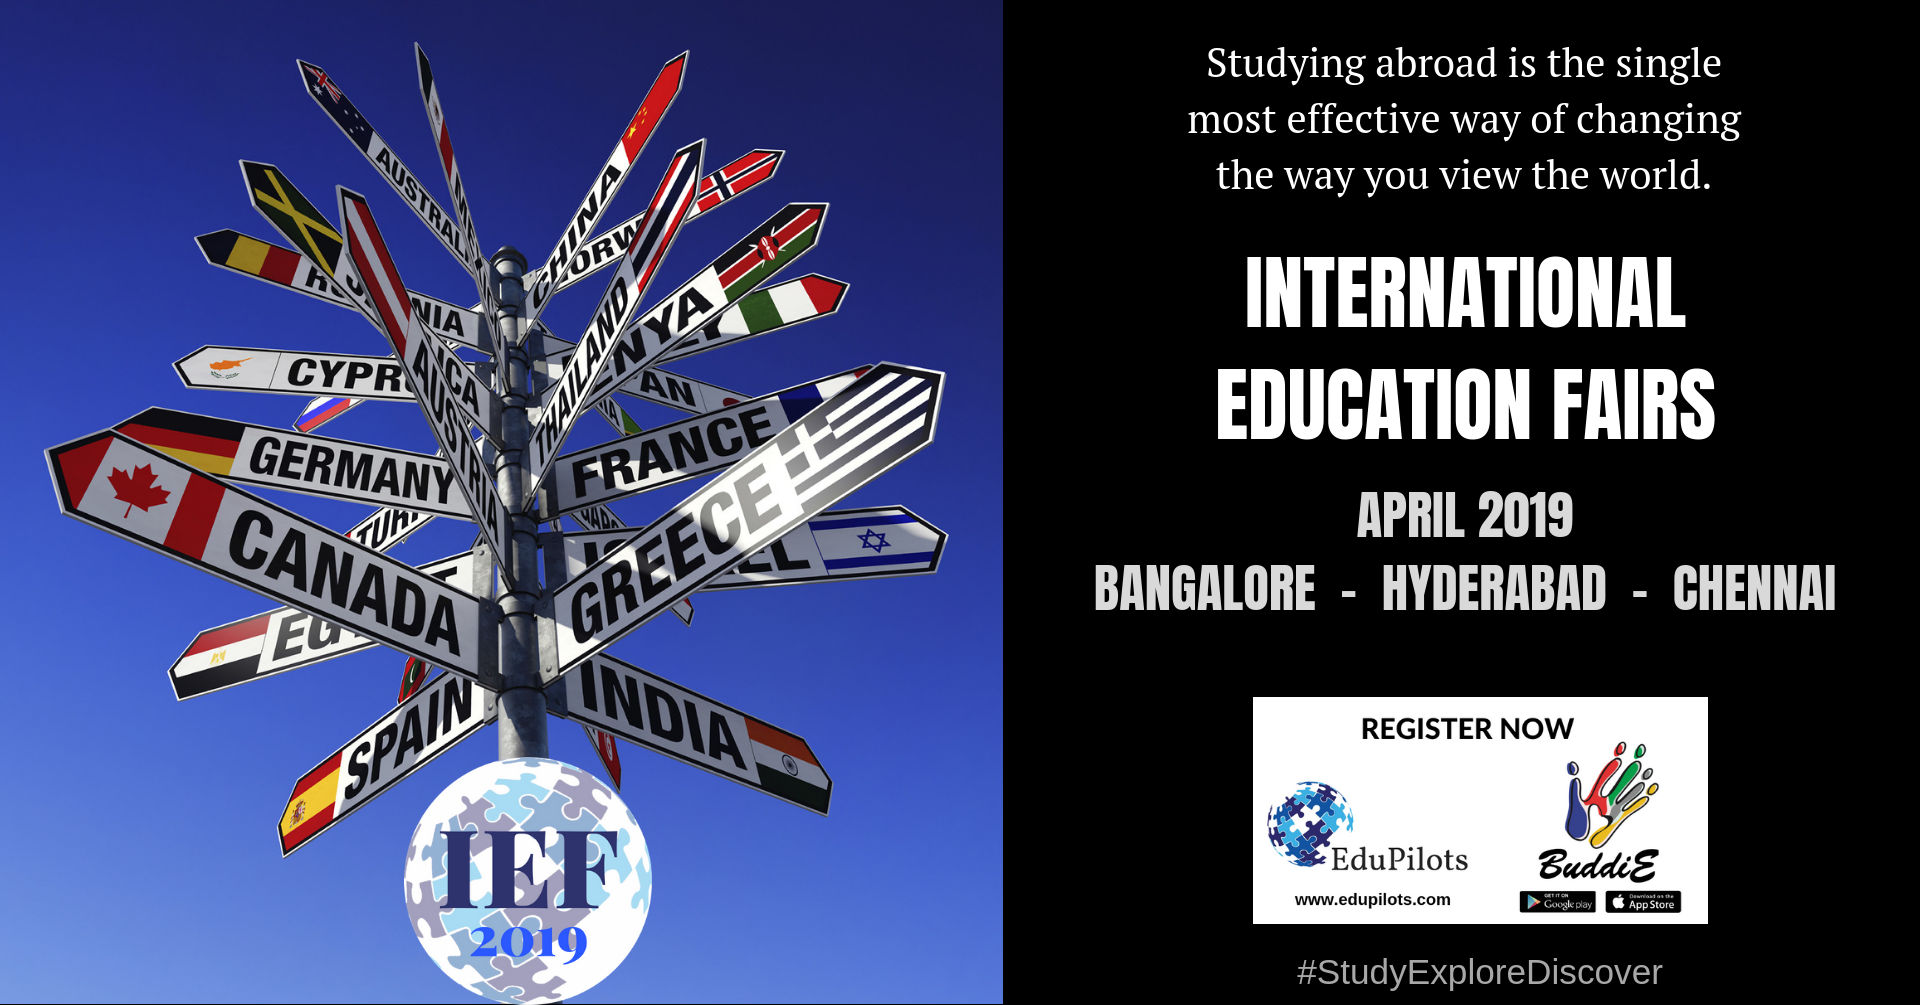 International Education Fairs